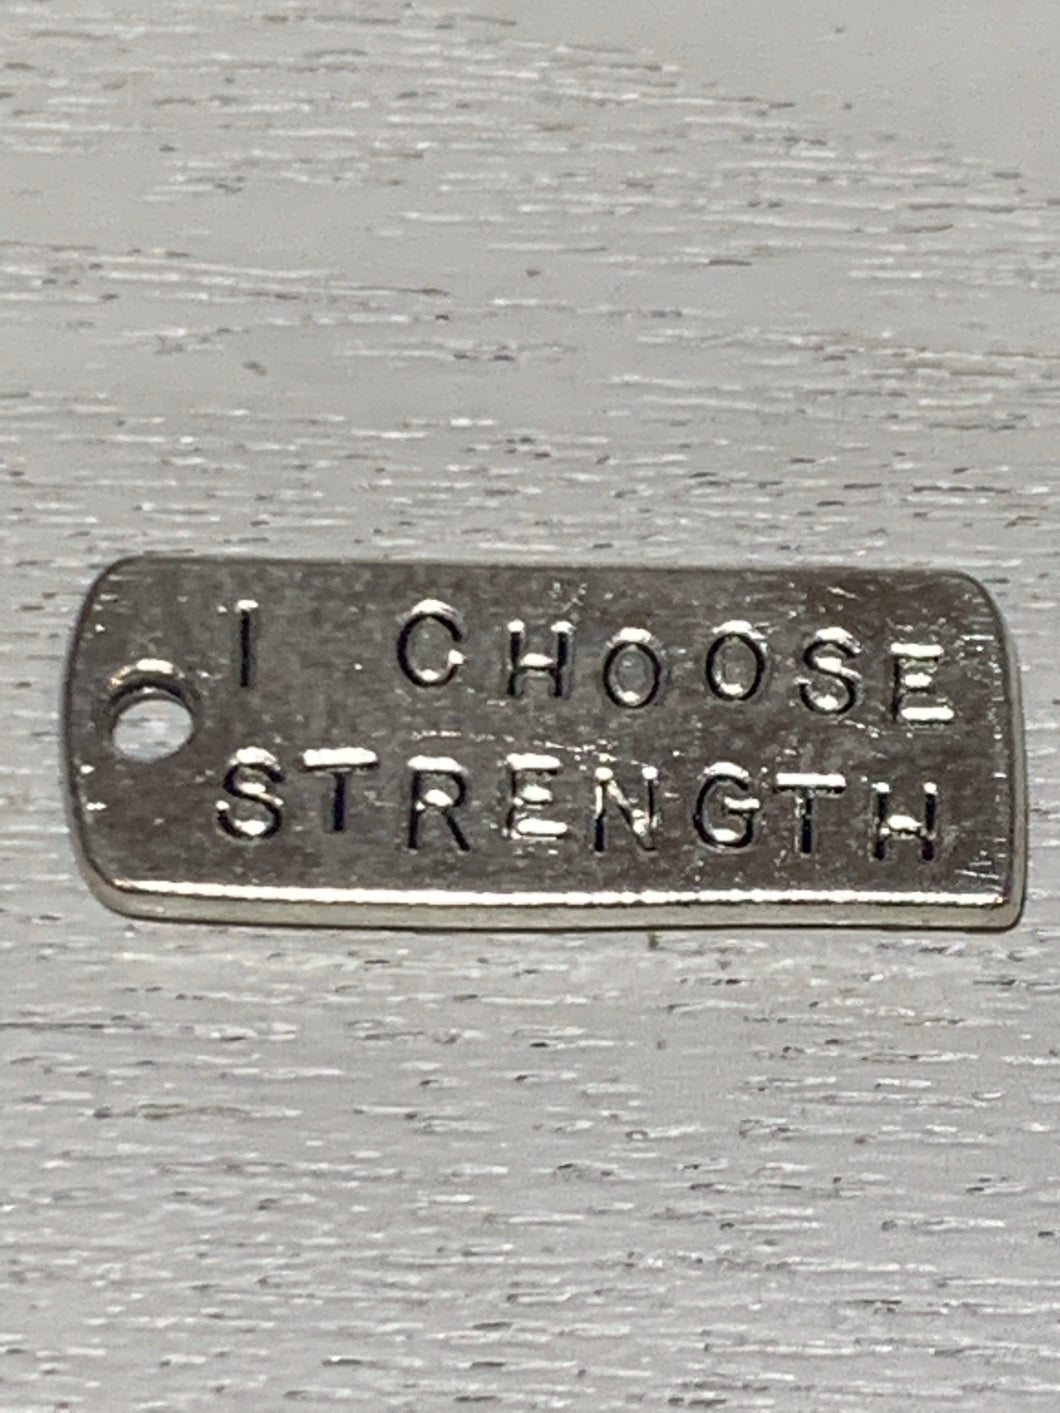 I choose strength